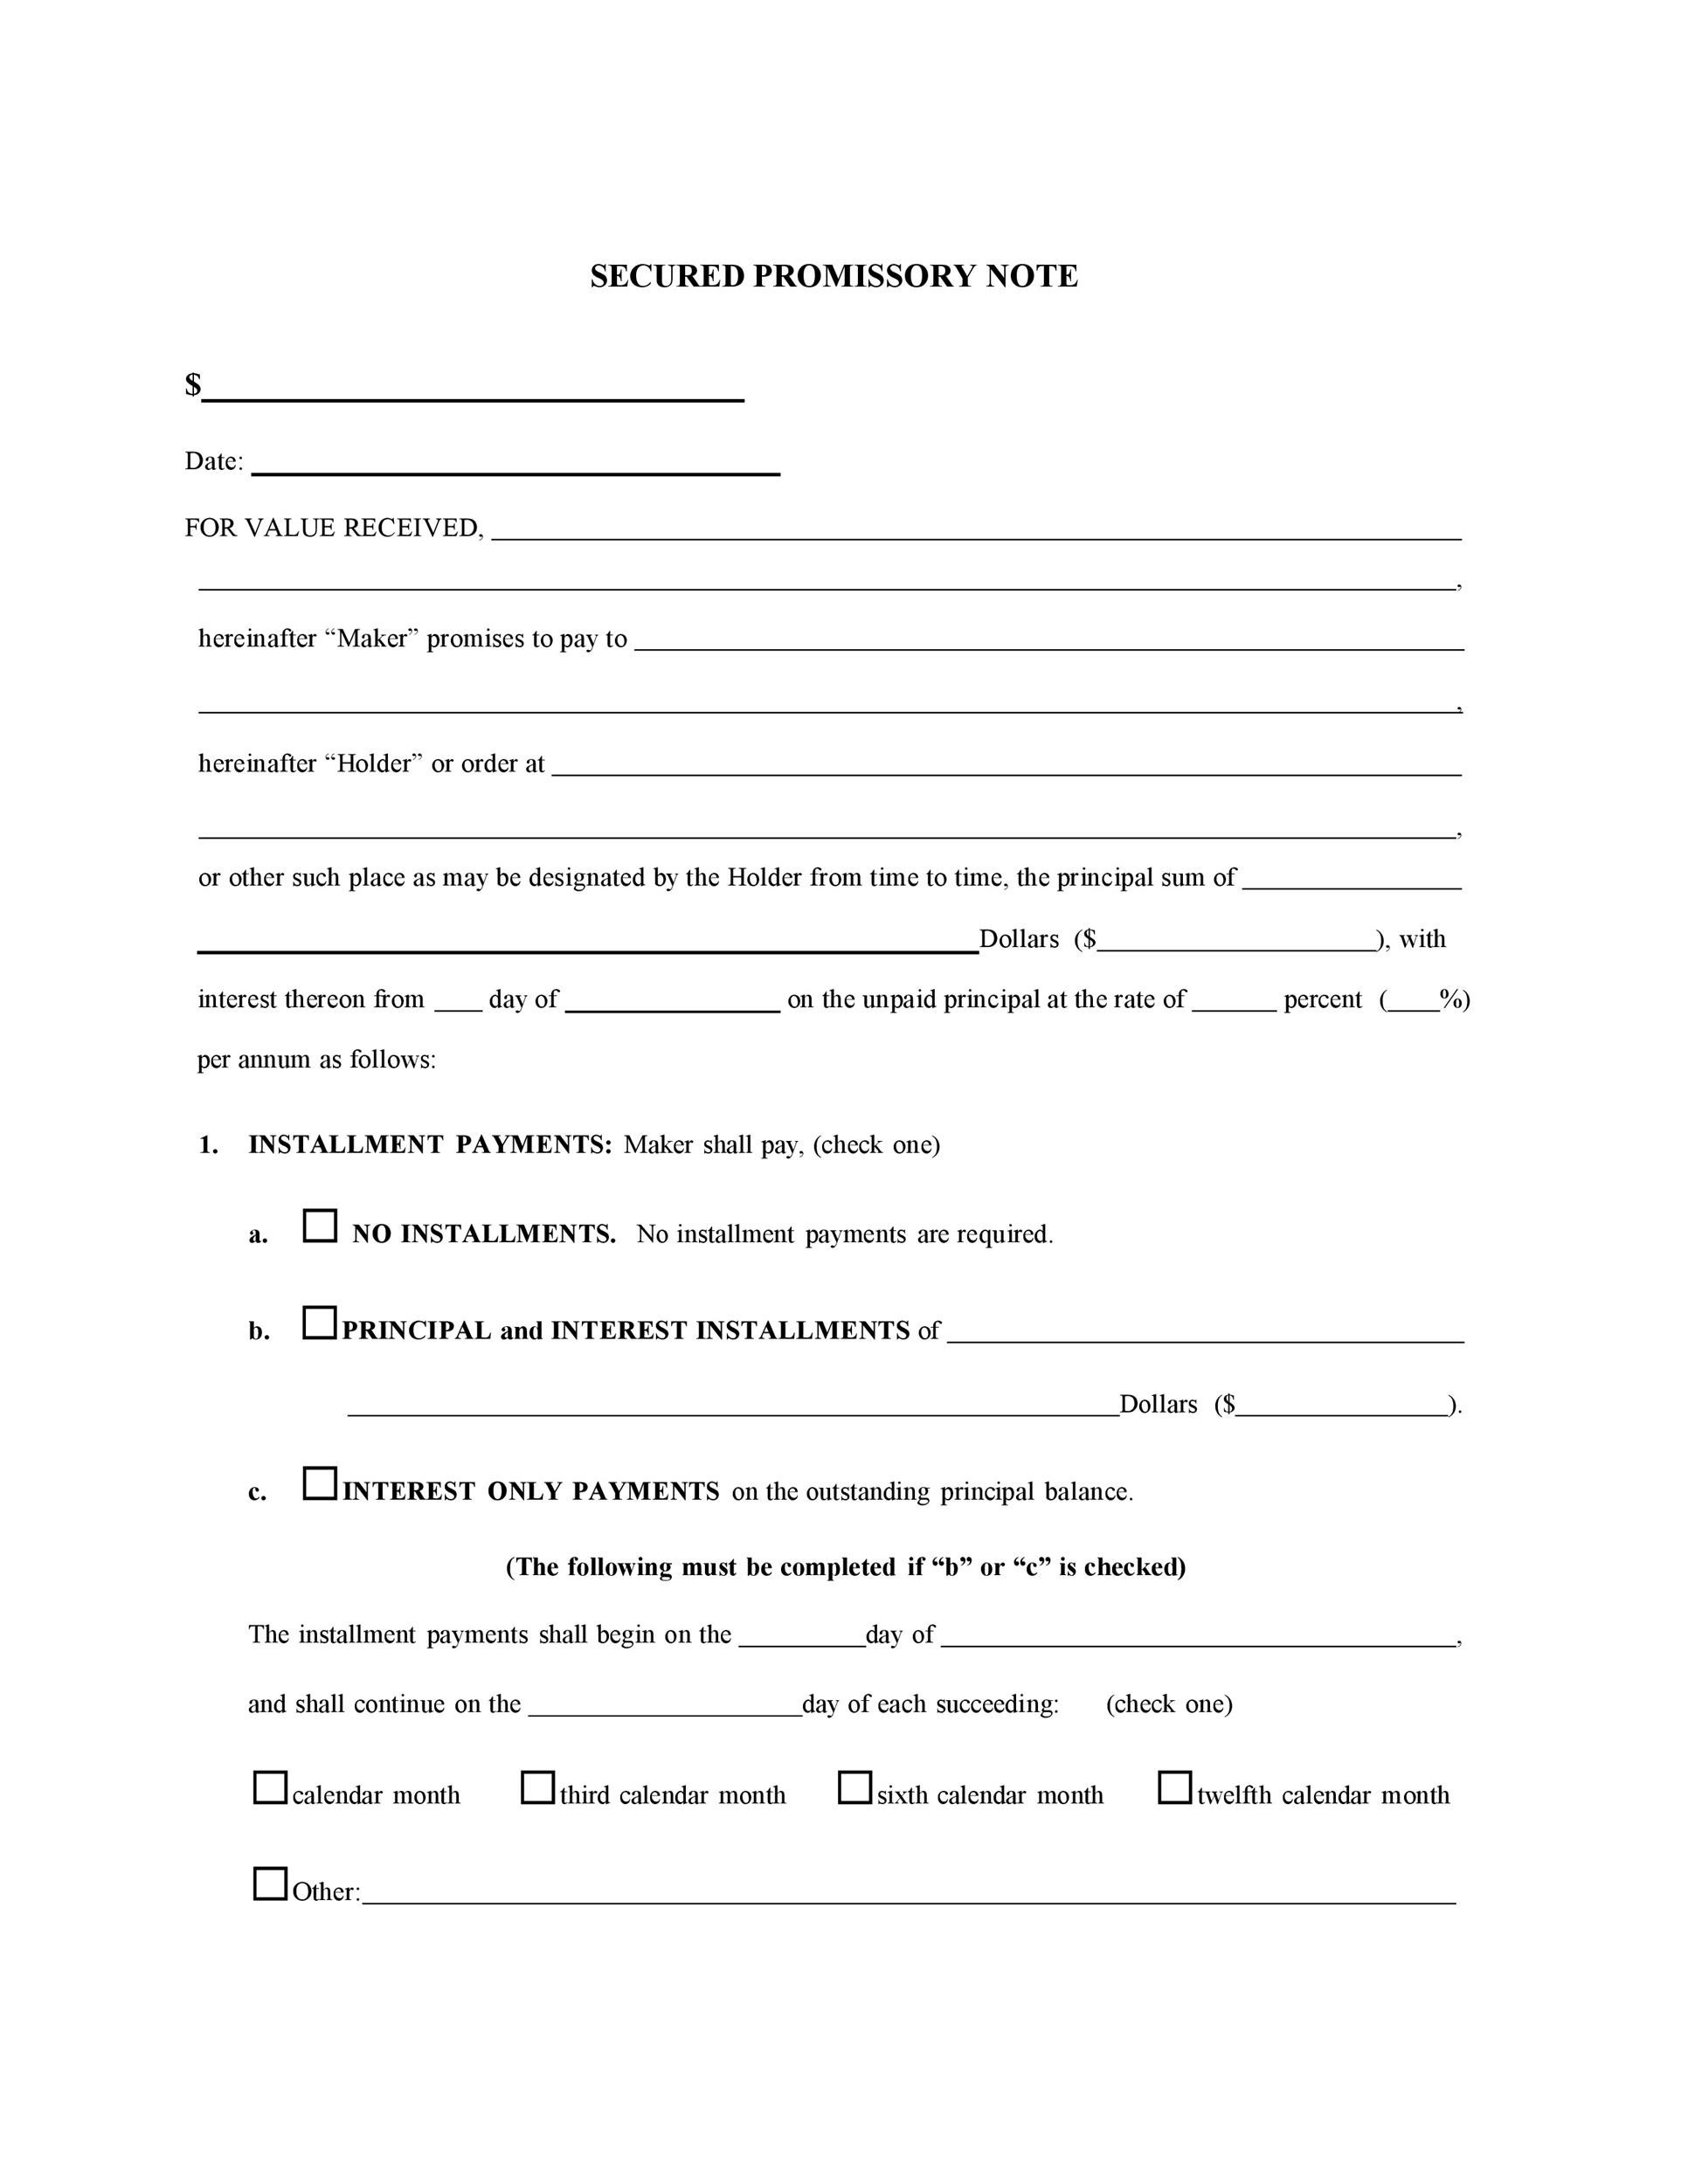 Free Promissory Note Template Geccetackletartsco - Free promissory note template for personal loan